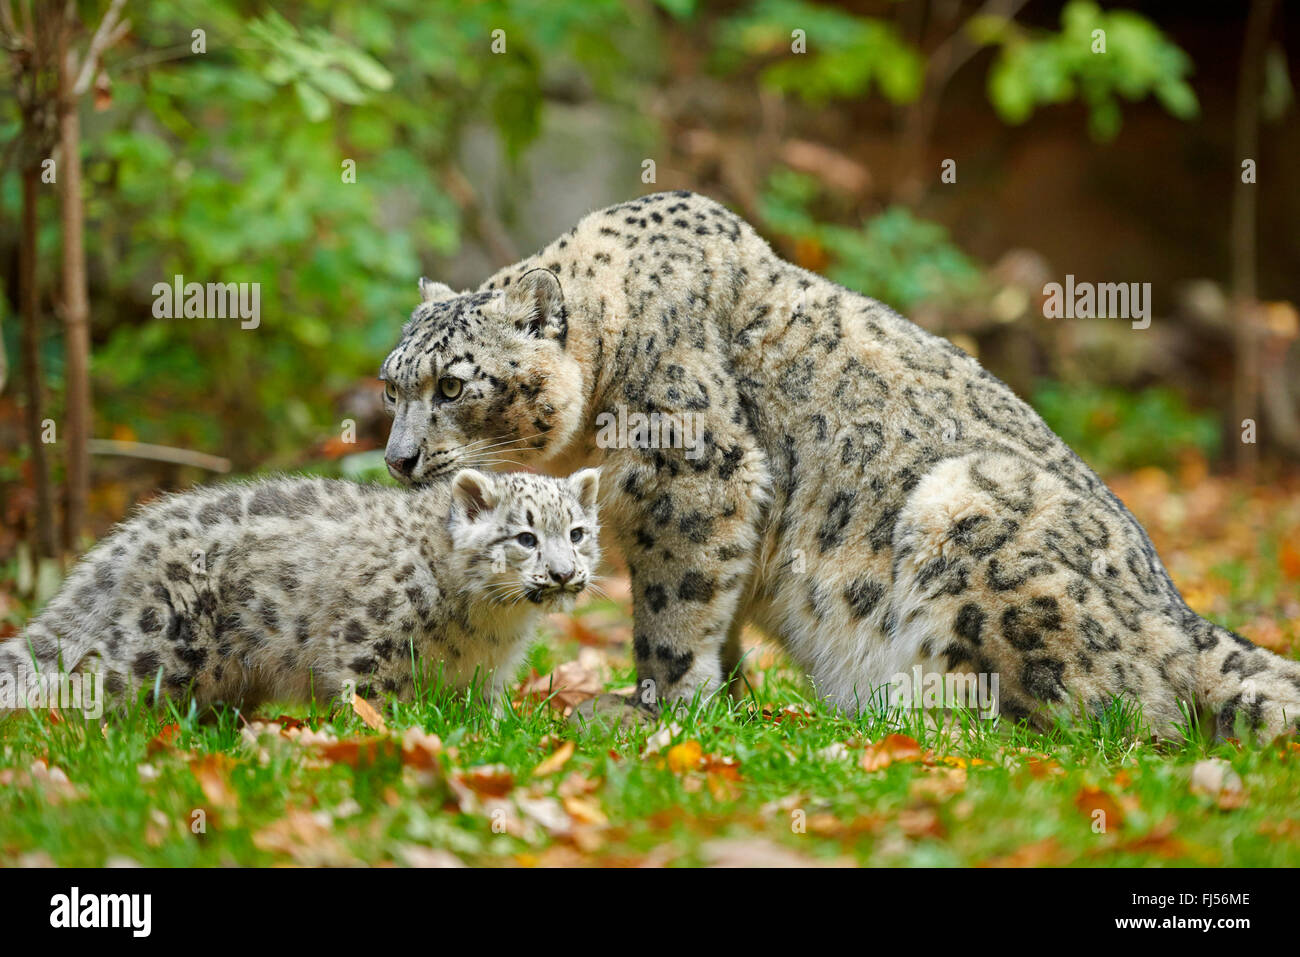 snow leopard (Uncia uncia, Panthera uncia), leopardesses with one youngster in a meadow - Stock Image